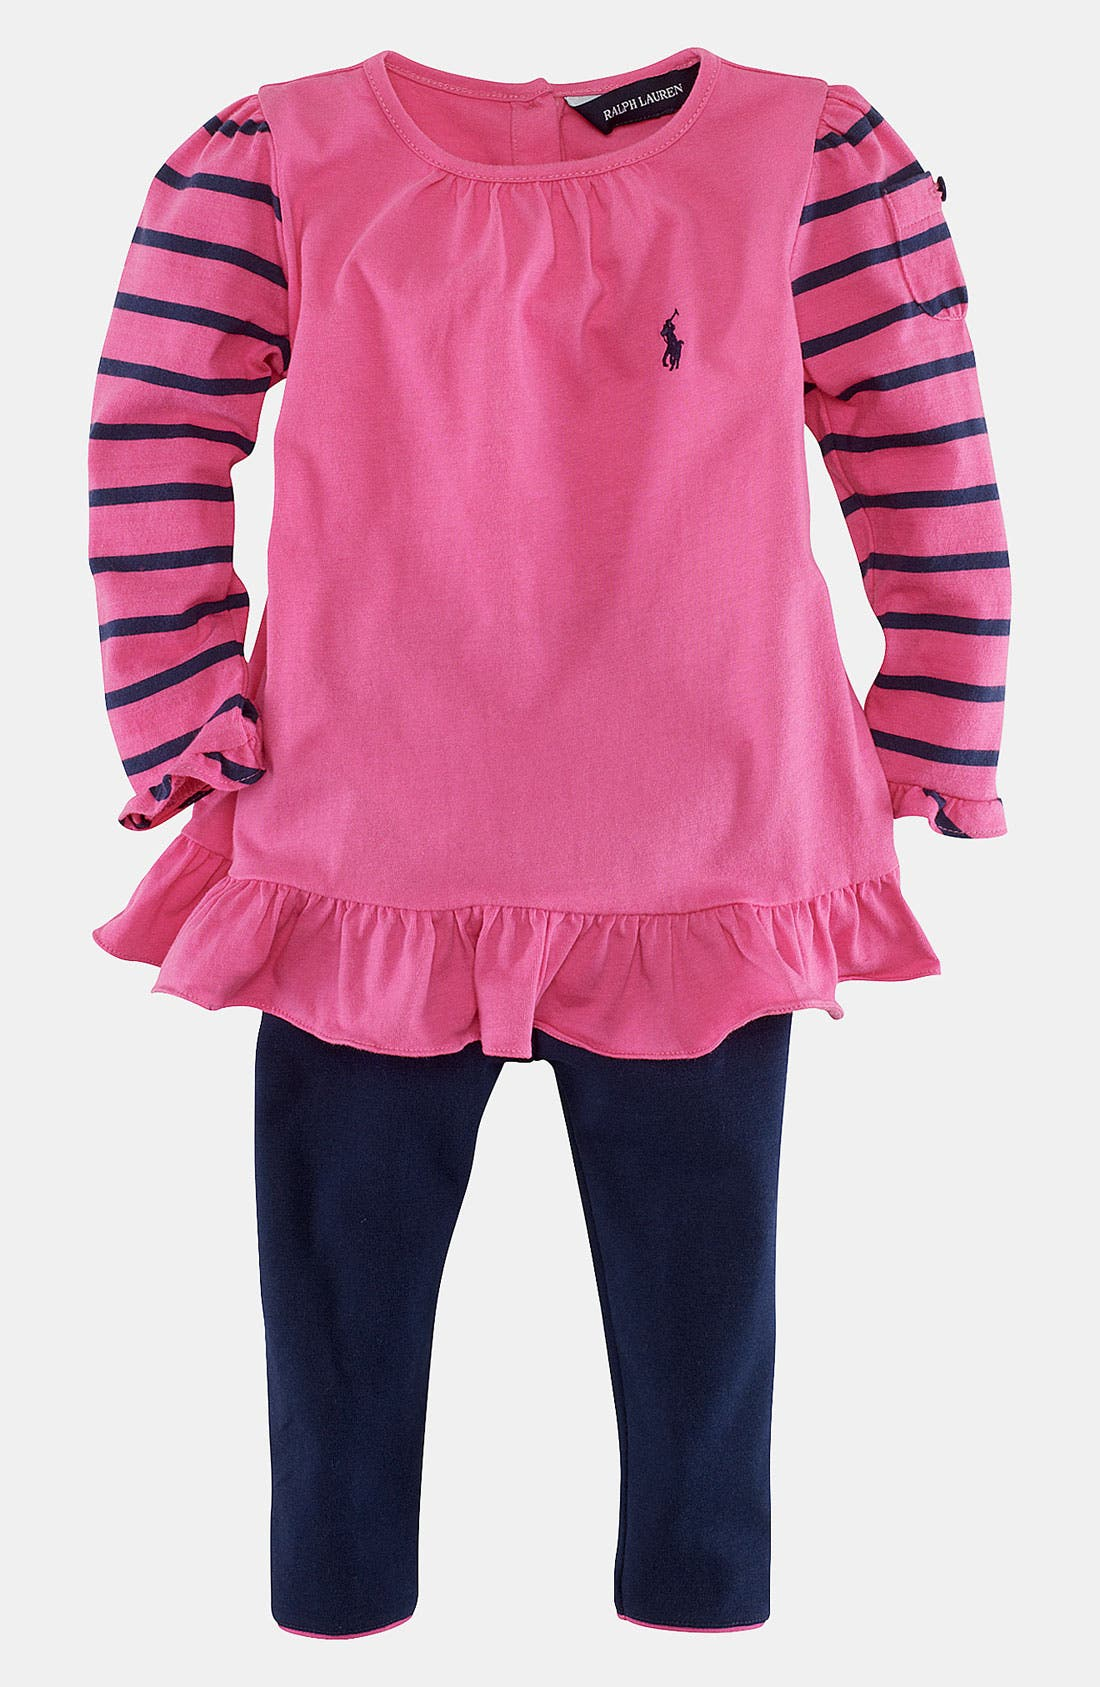 Main Image - Ralph Lauren Shirt & Leggings (Infant)